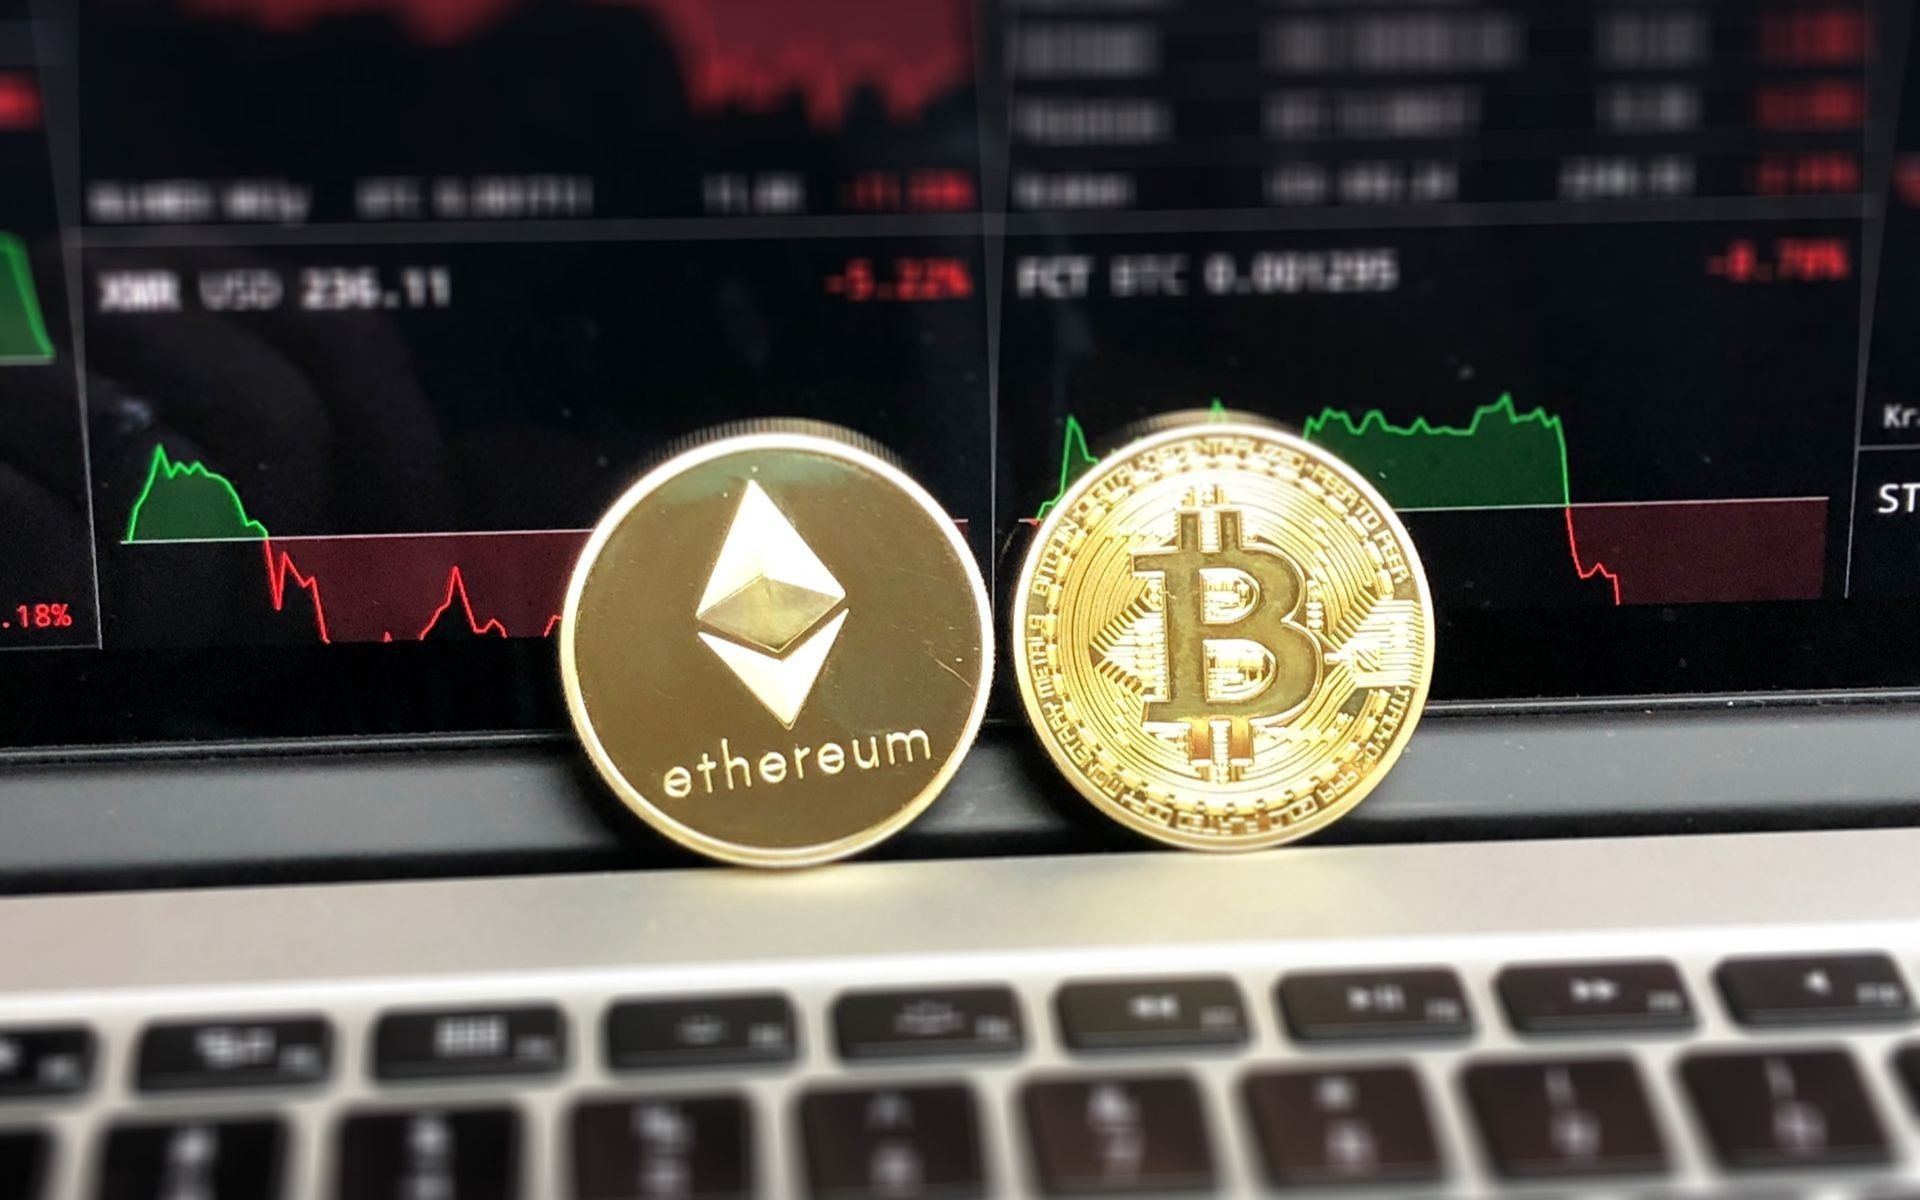 Financial advisors - ethereum or bitcoin?